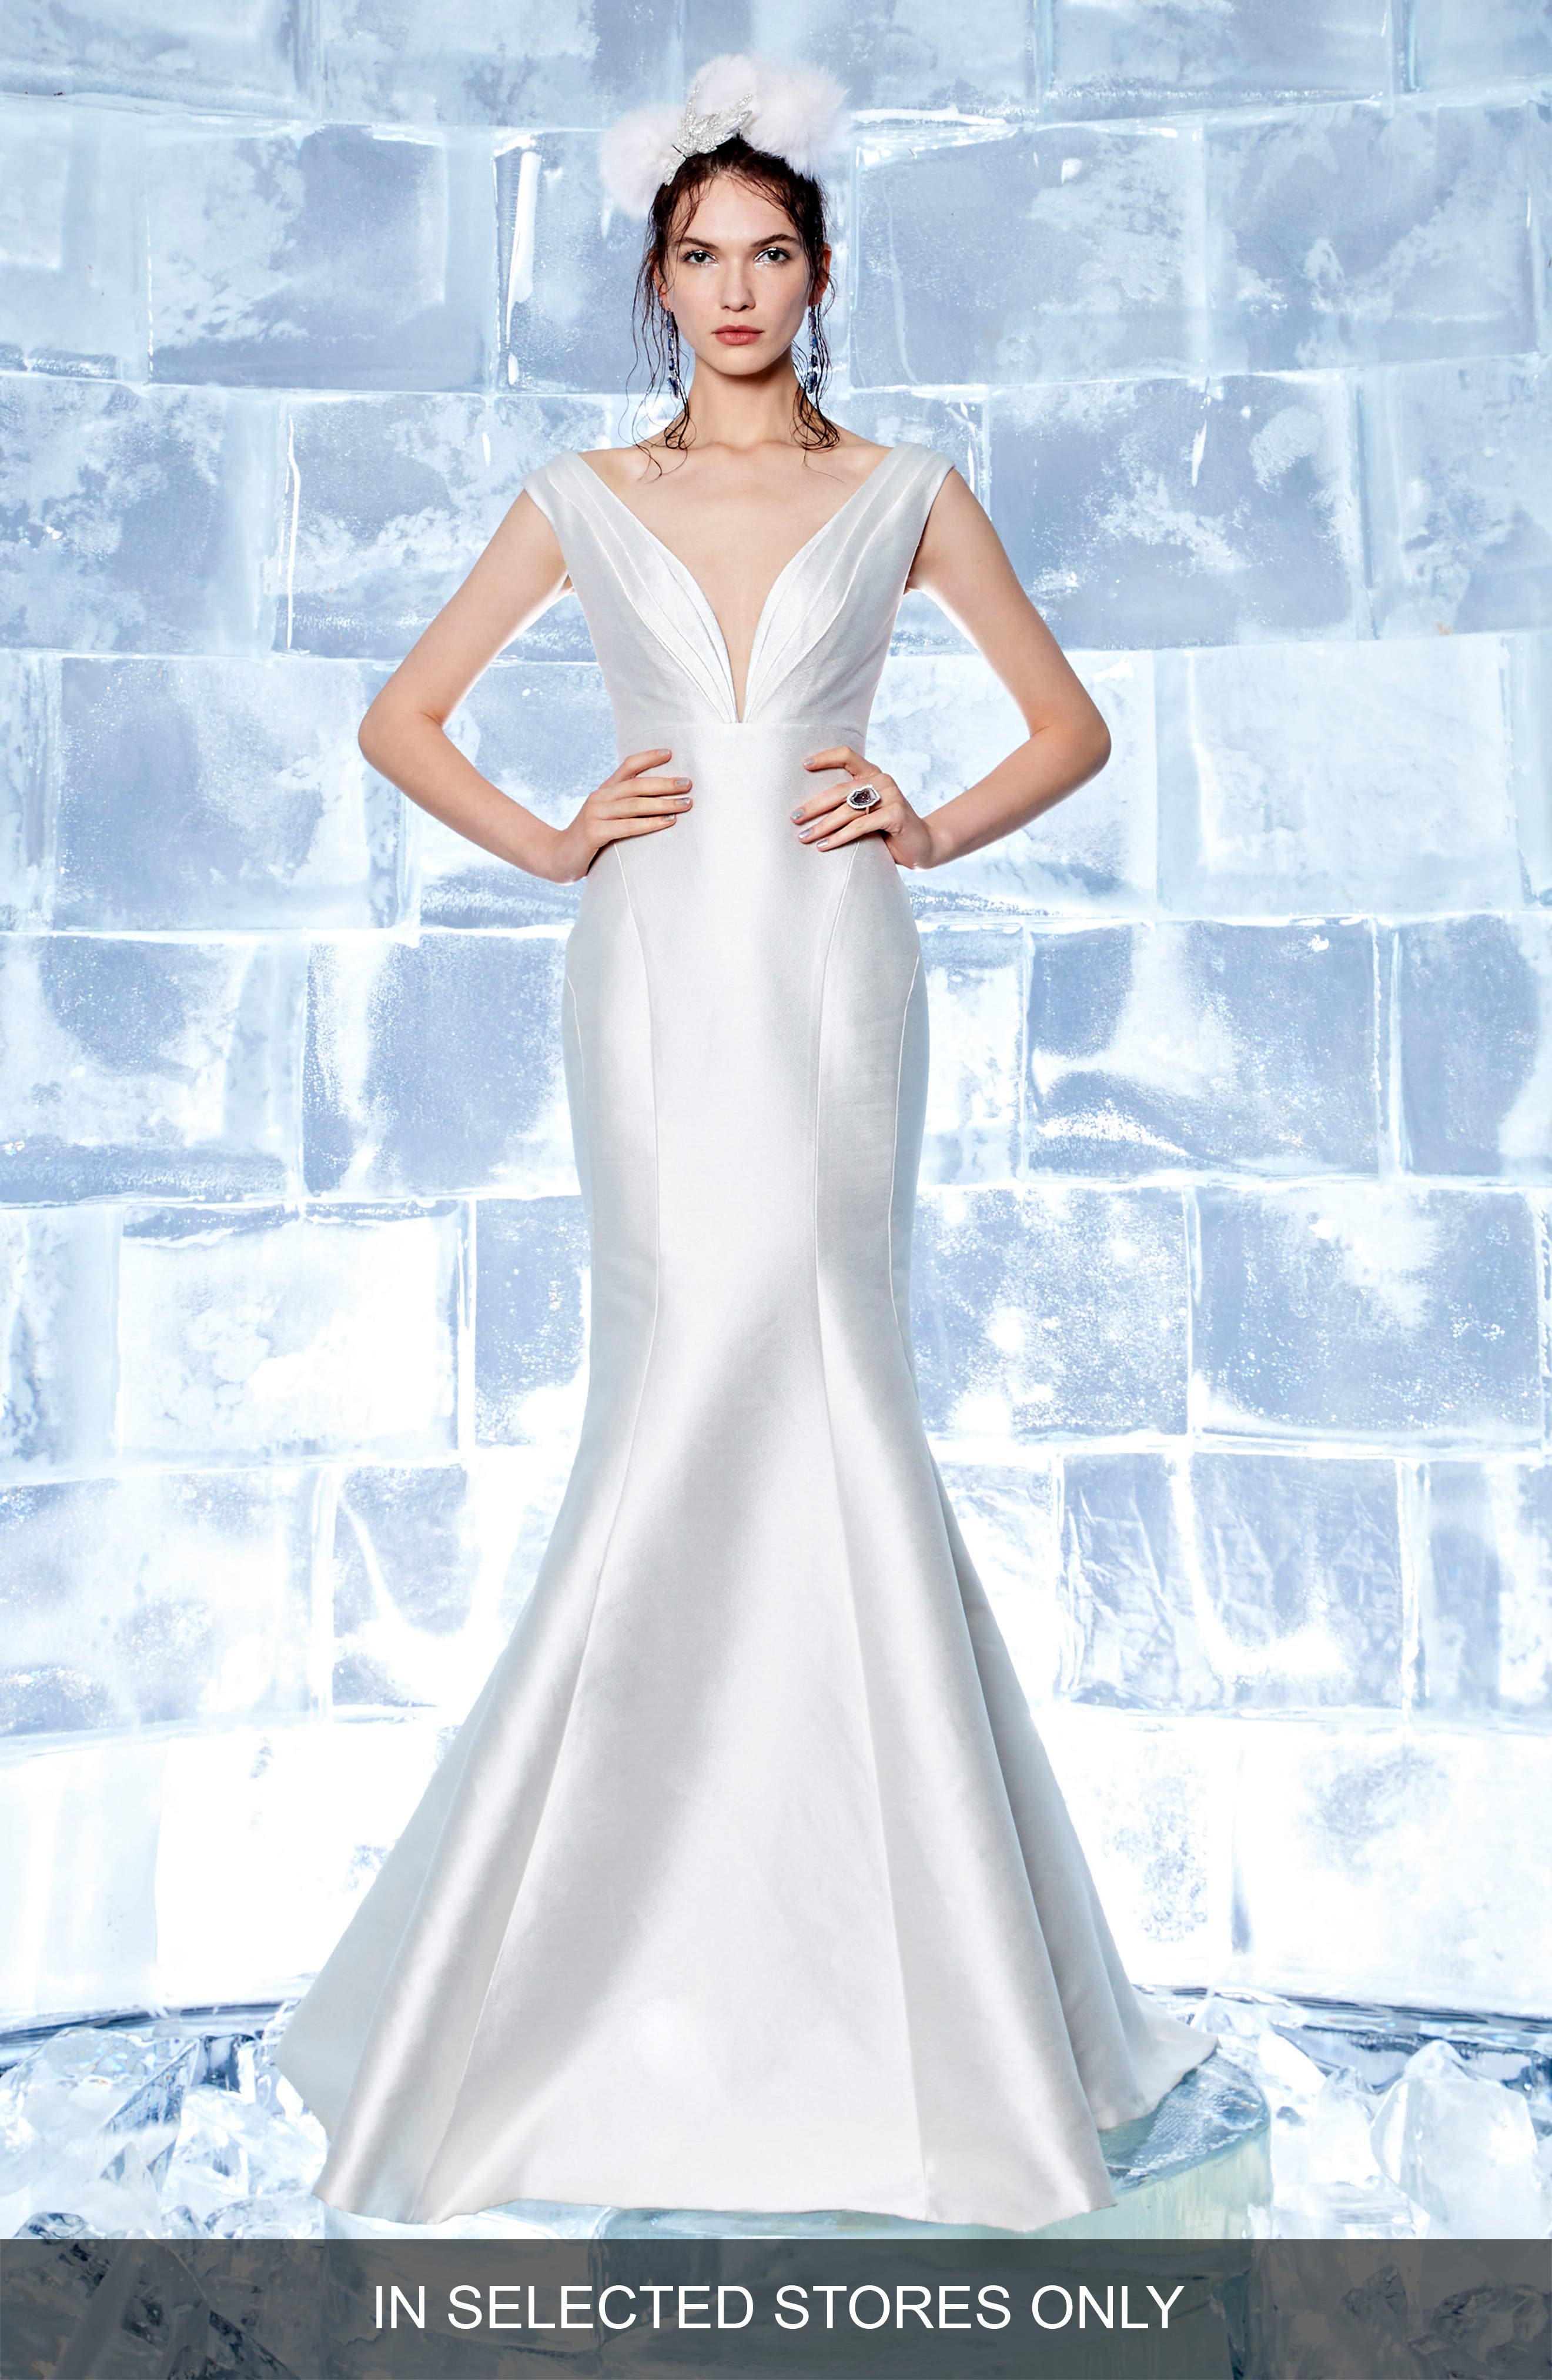 Alternate Image 1 Selected - Ines by Ines Di Santo Blanche Duchess Satin Mermaid Gown